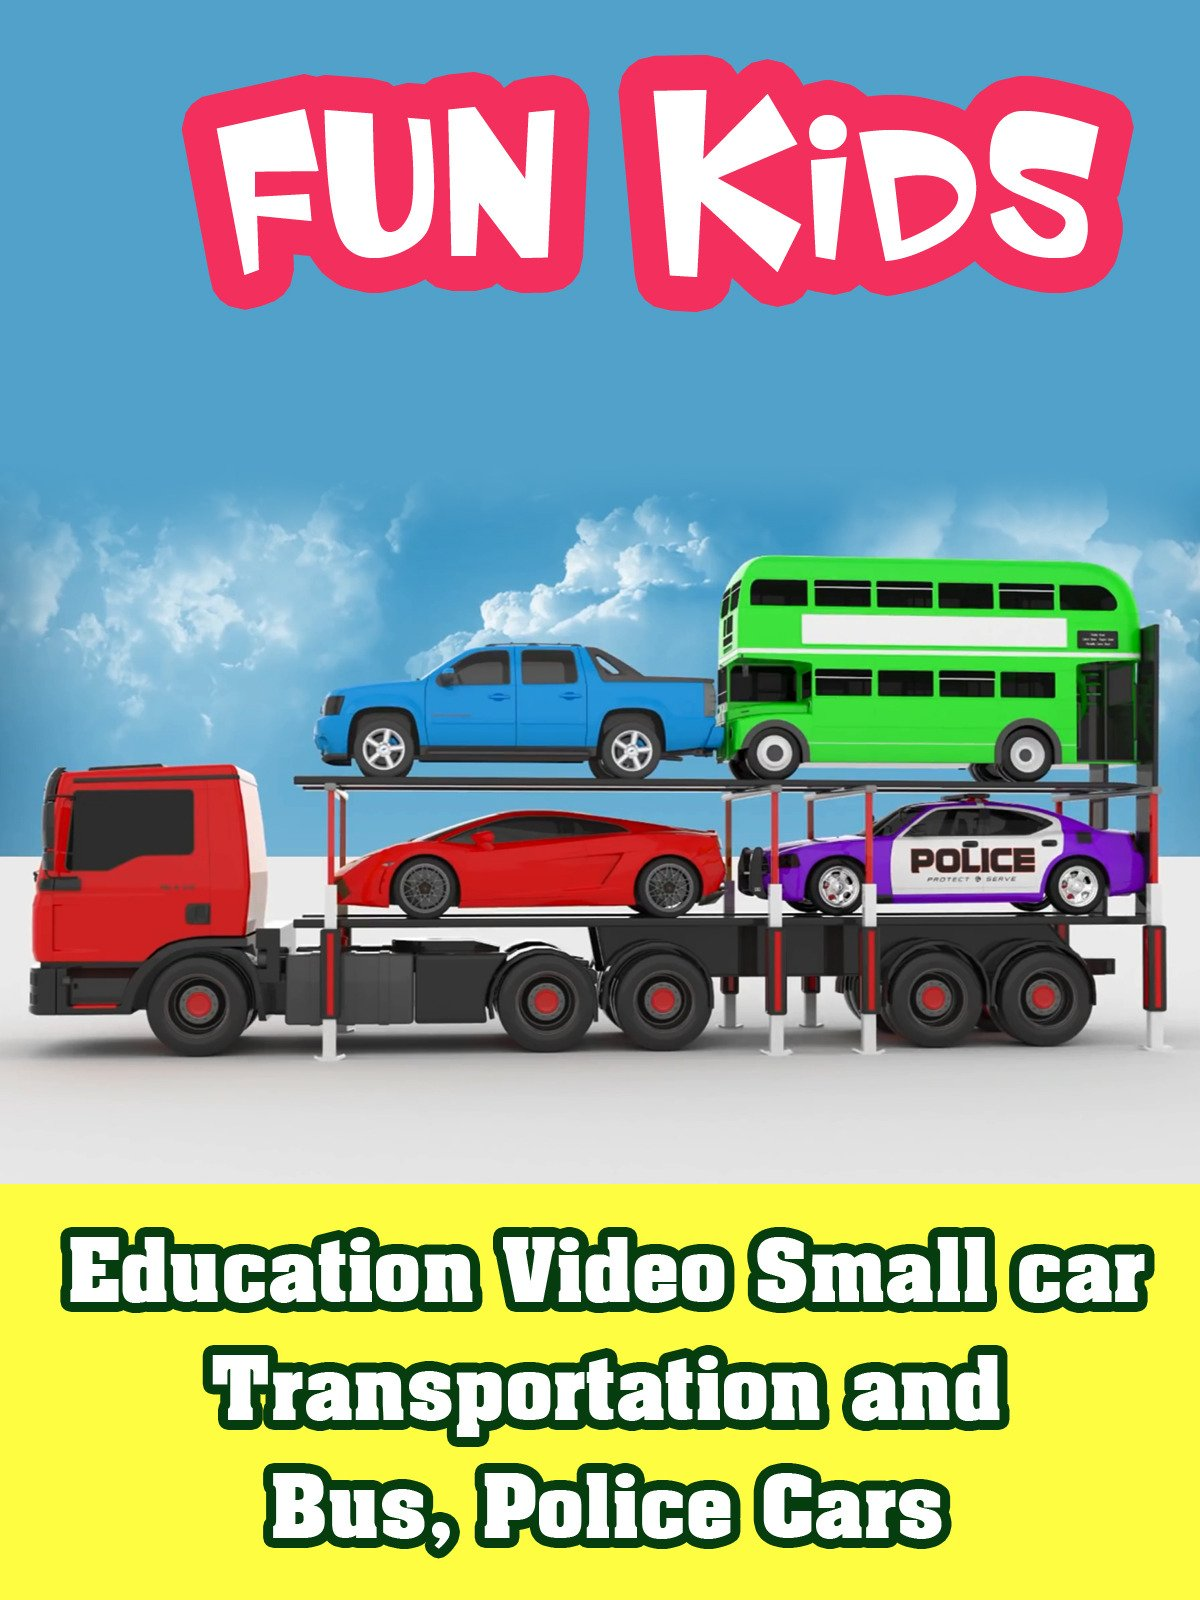 Education Video Small car Transportation and Bus, Police Cars